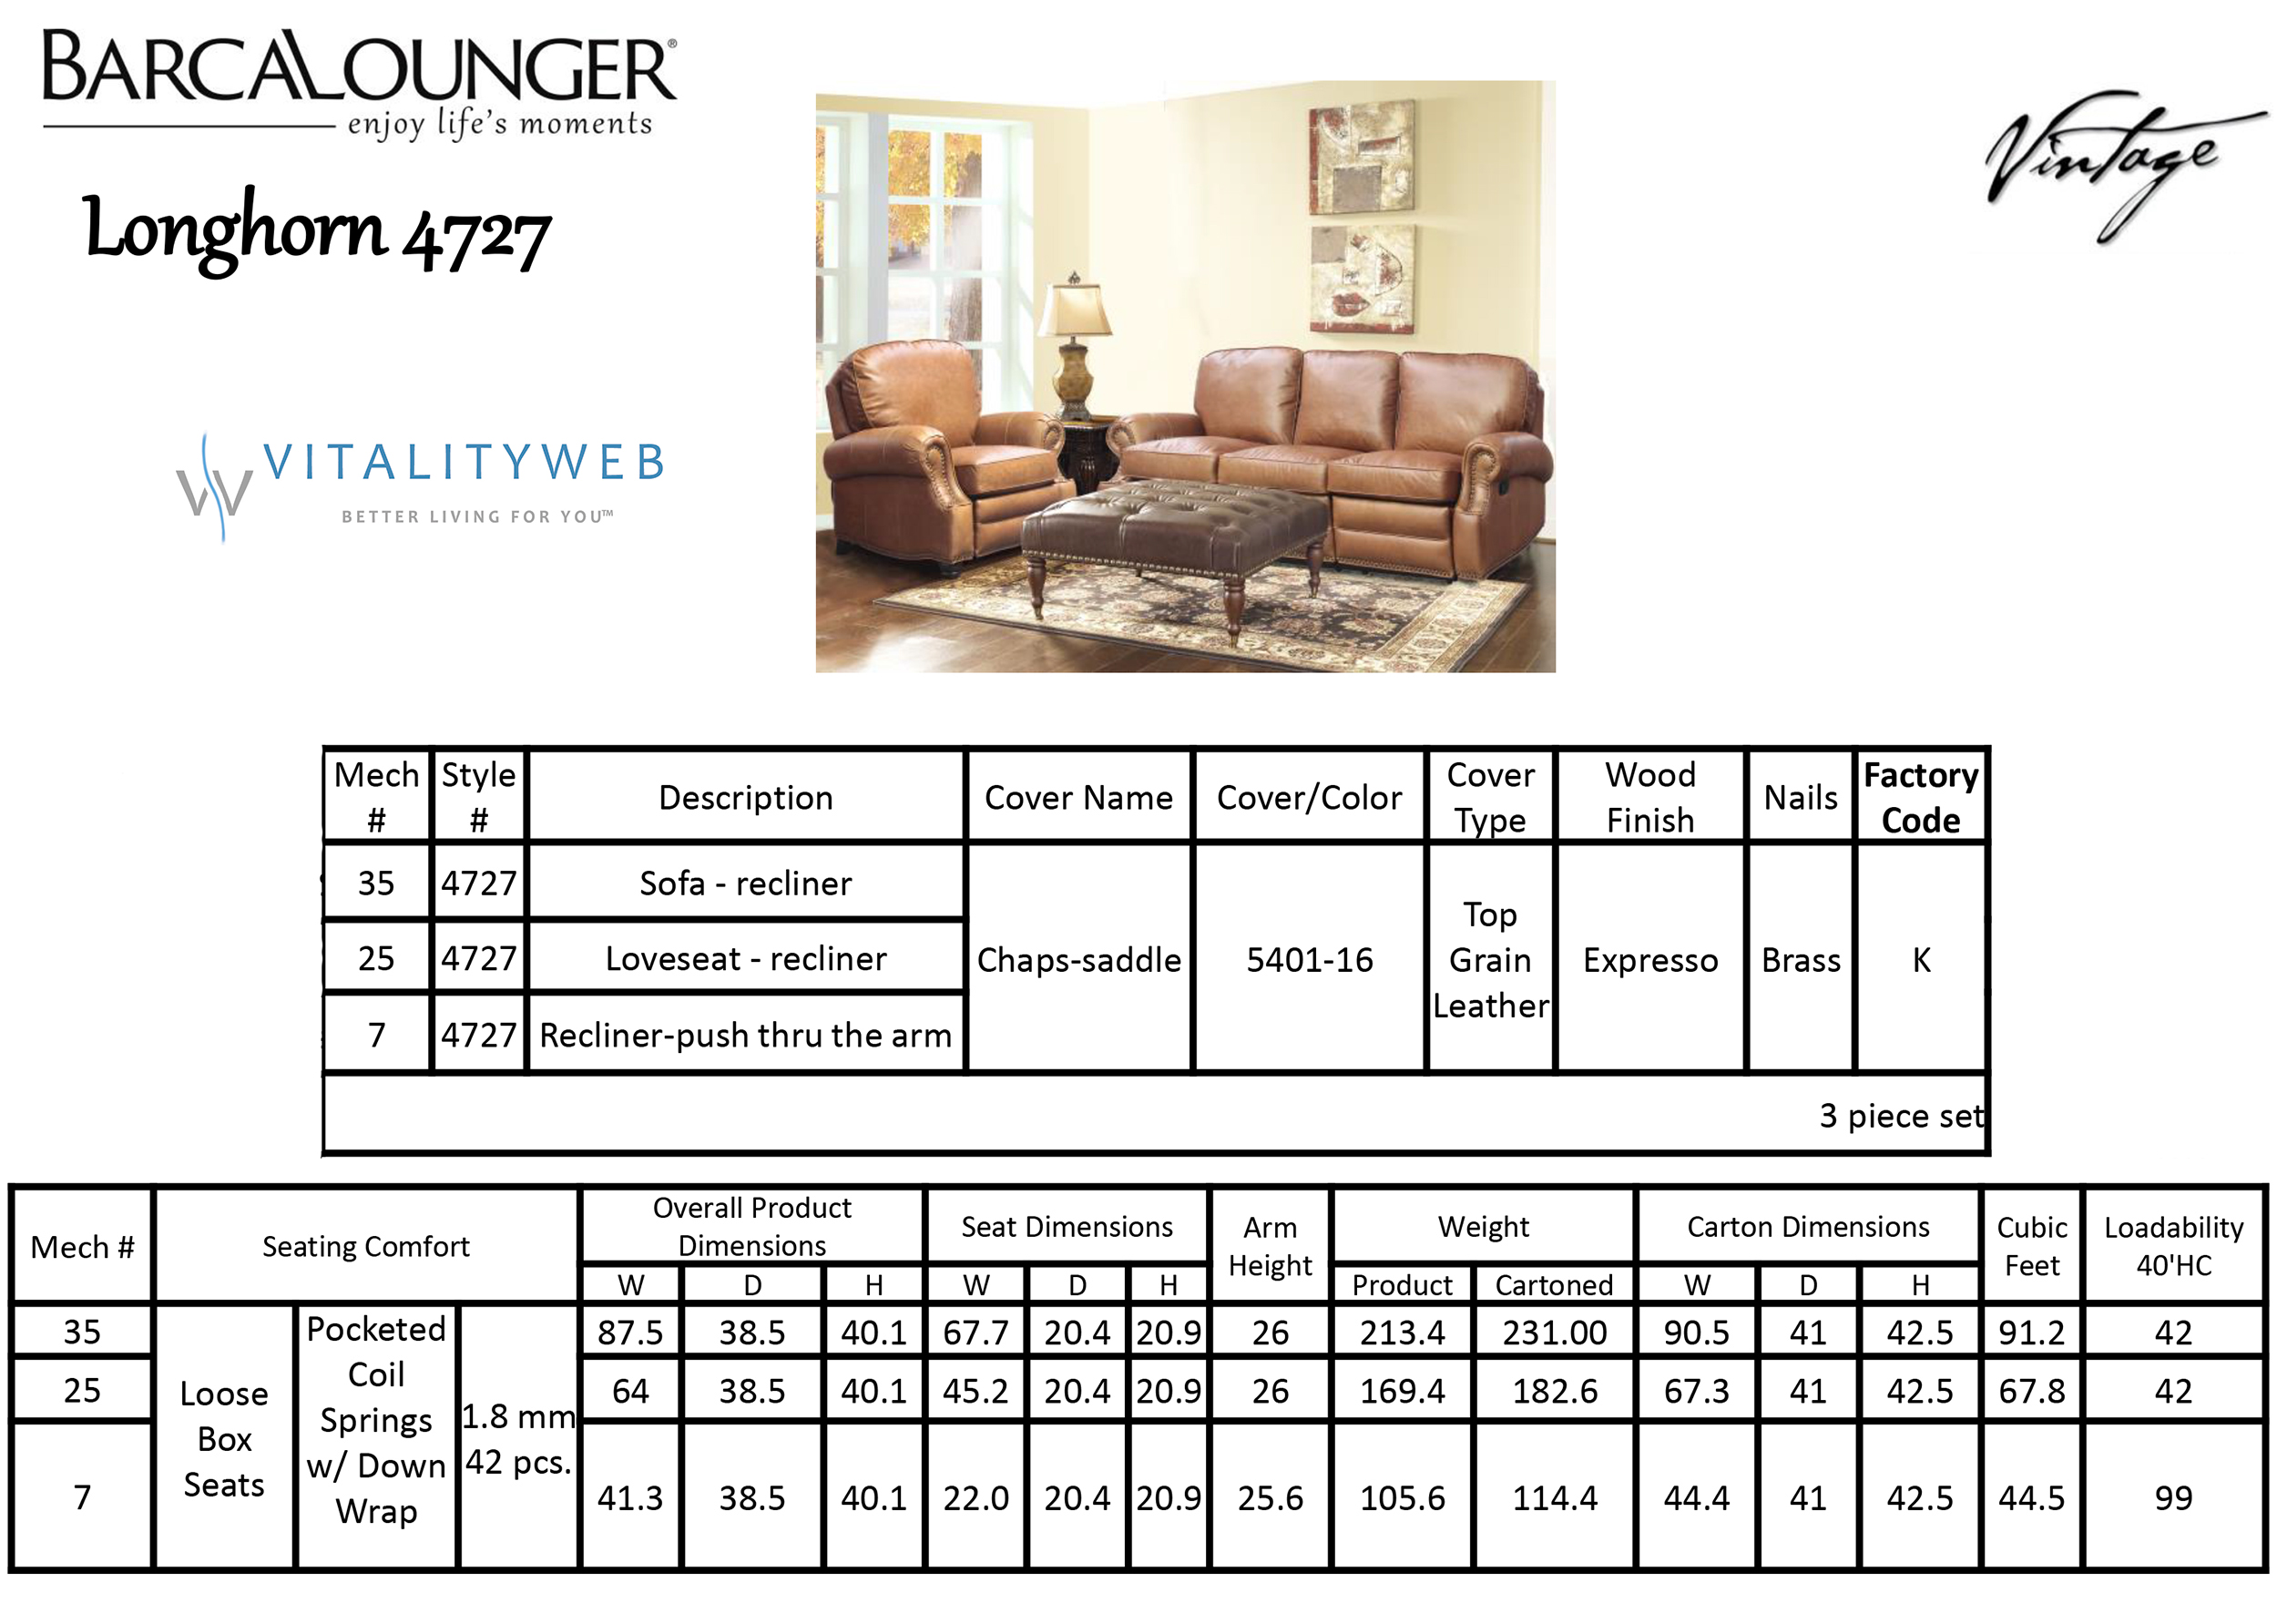 Barcalounger Longhorn II 4727 Leather Recliner Chair and Sofa Dimensions  sc 1 st  Vitalityweb.com & Barcalounger Longhorn II Leather Recliner Chair - Leather Recliner ... islam-shia.org